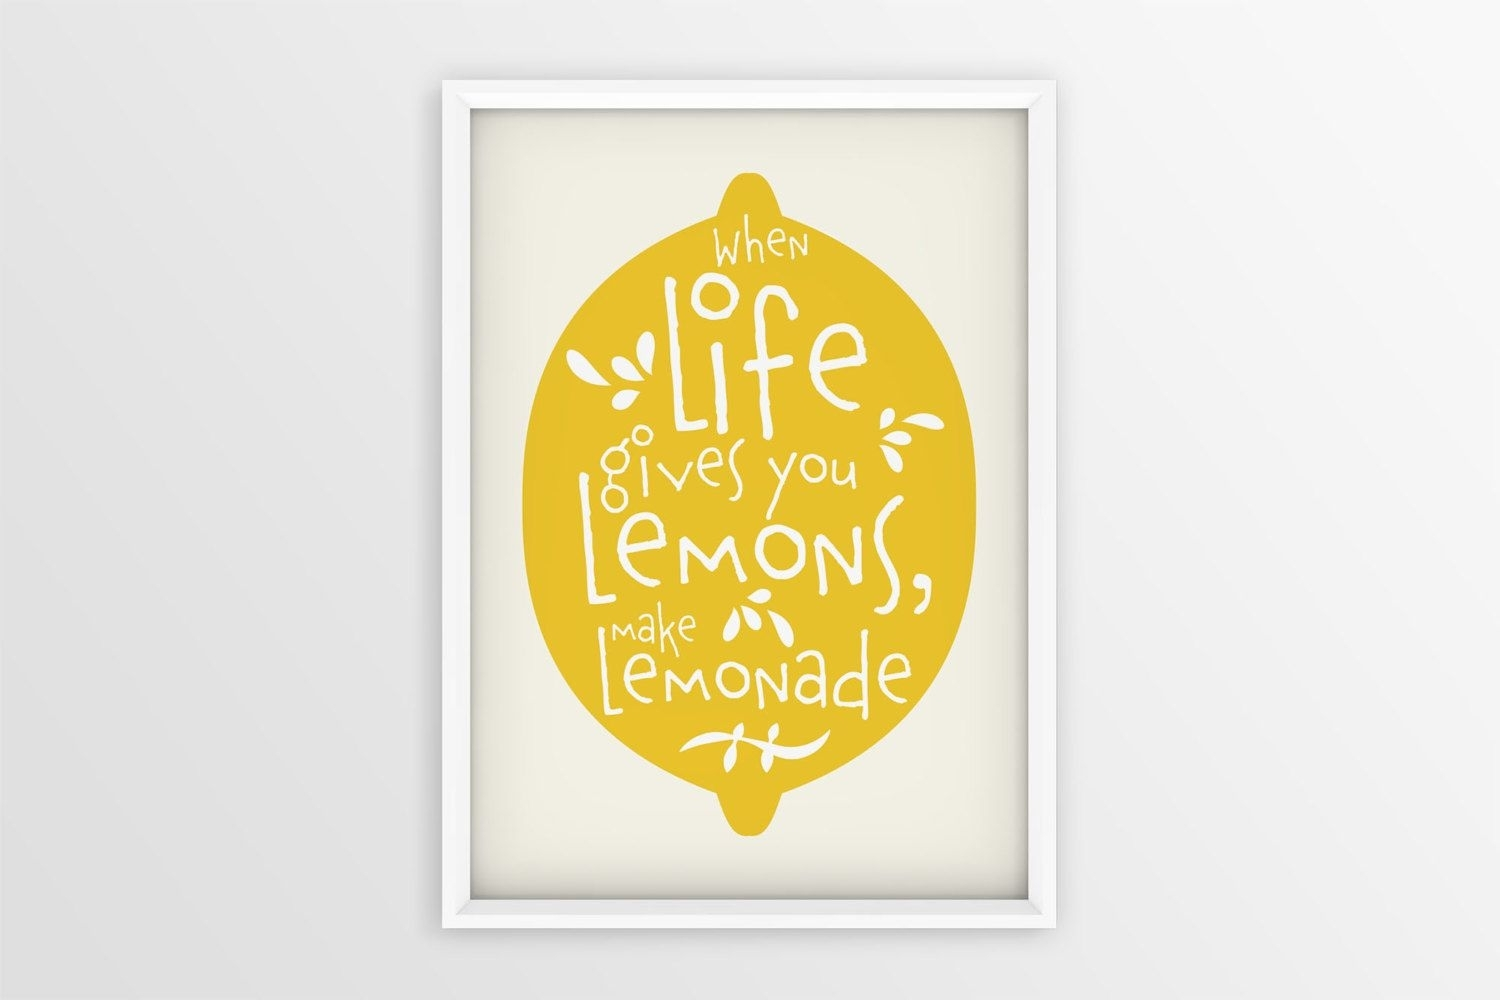 Lemonade Wall Art | If Life Gives You Lemons Make Lemonade | Lemon Pertaining To Latest Lemon Wall Art (View 15 of 20)